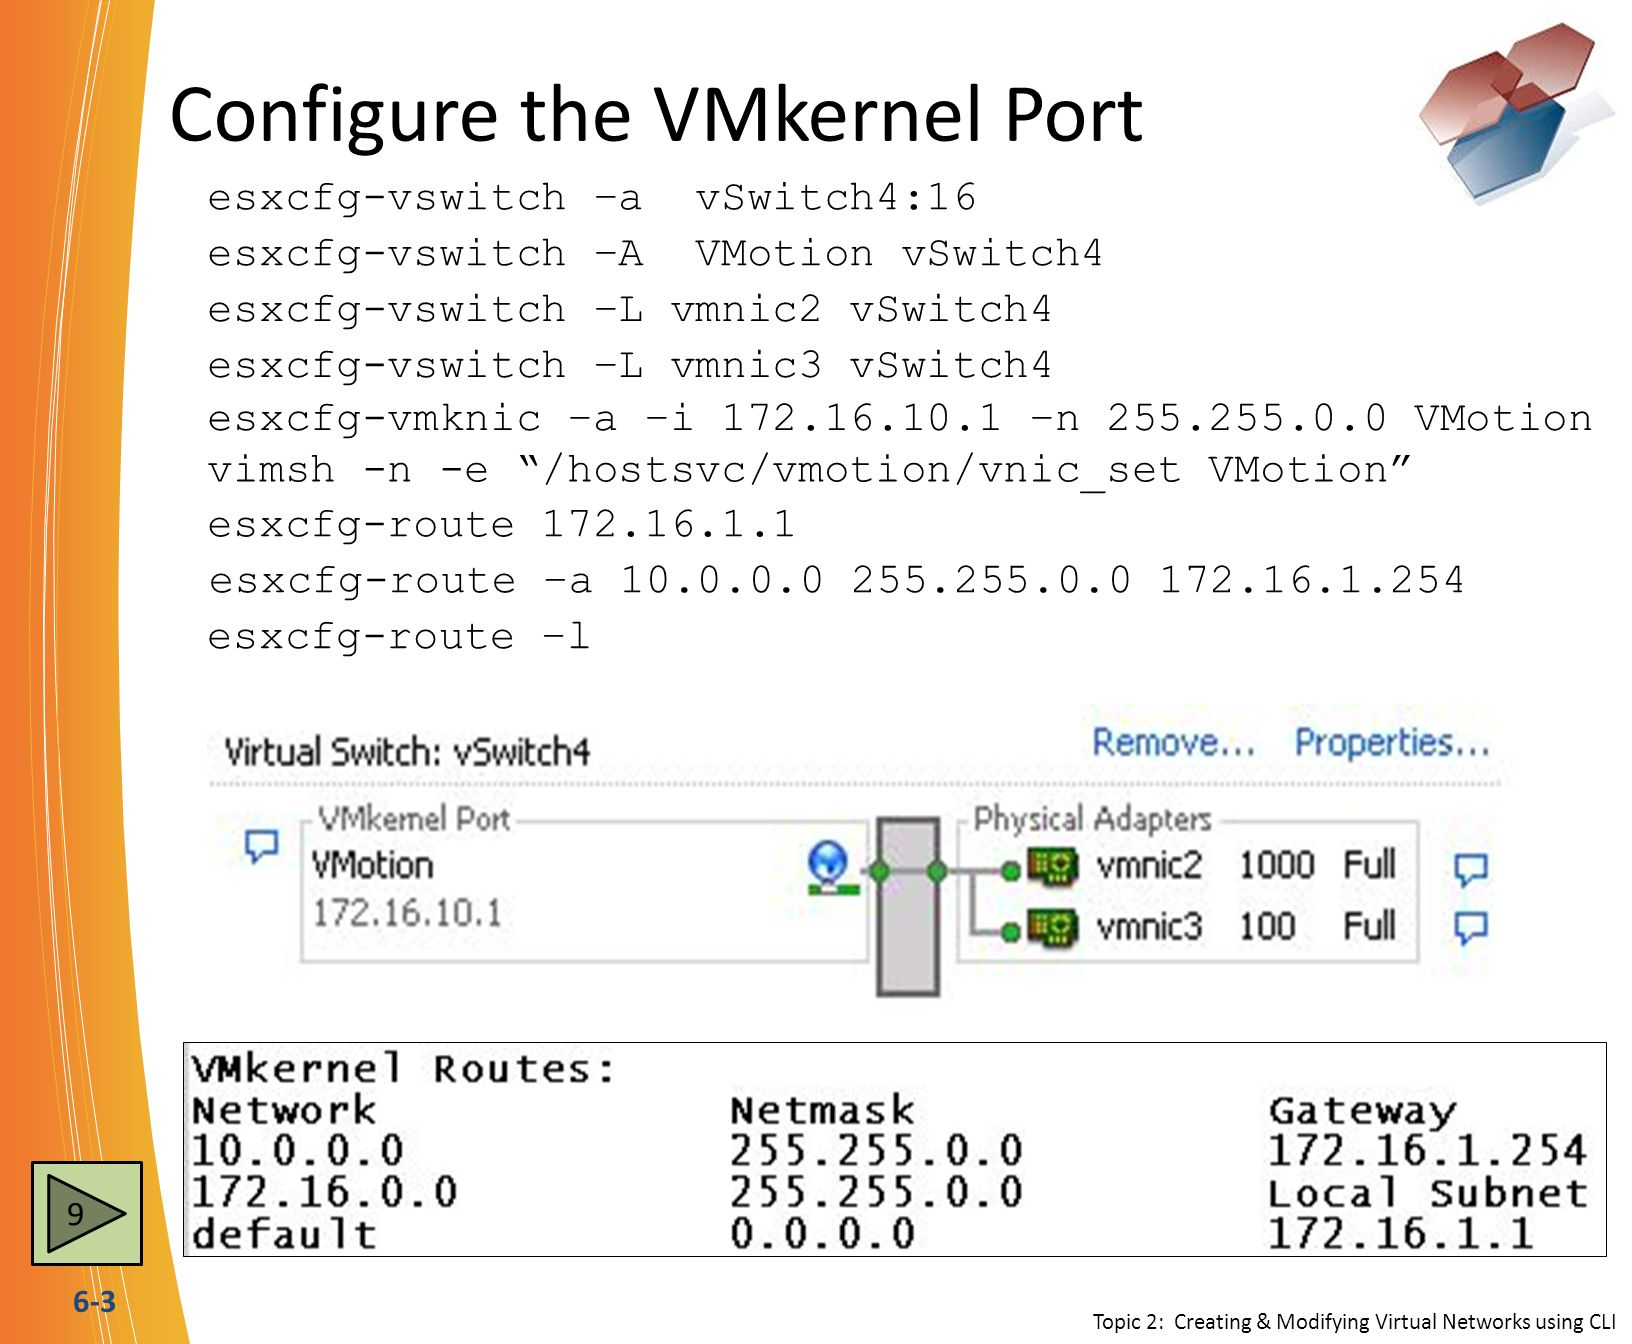 6-3 Configure the VMkernel Port esxcfg-vswitch –a vSwitch4:16 esxcfg-vswitch –A VMotion vSwitch4 esxcfg-vswitch –L vmnic3 vSwitch4 esxcfg-route 172.16.1.1 esxcfg-vswitch –L vmnic2 vSwitch4 esxcfg-vmknic –a –i 172.16.10.1 –n 255.255.0.0 VMotion esxcfg-route –a 10.0.0.0 255.255.0.0 172.16.1.254 esxcfg-route –l vimsh -n -e /hostsvc/vmotion/vnic_set VMotion Topic 2: Creating & Modifying Virtual Networks using CLI 9